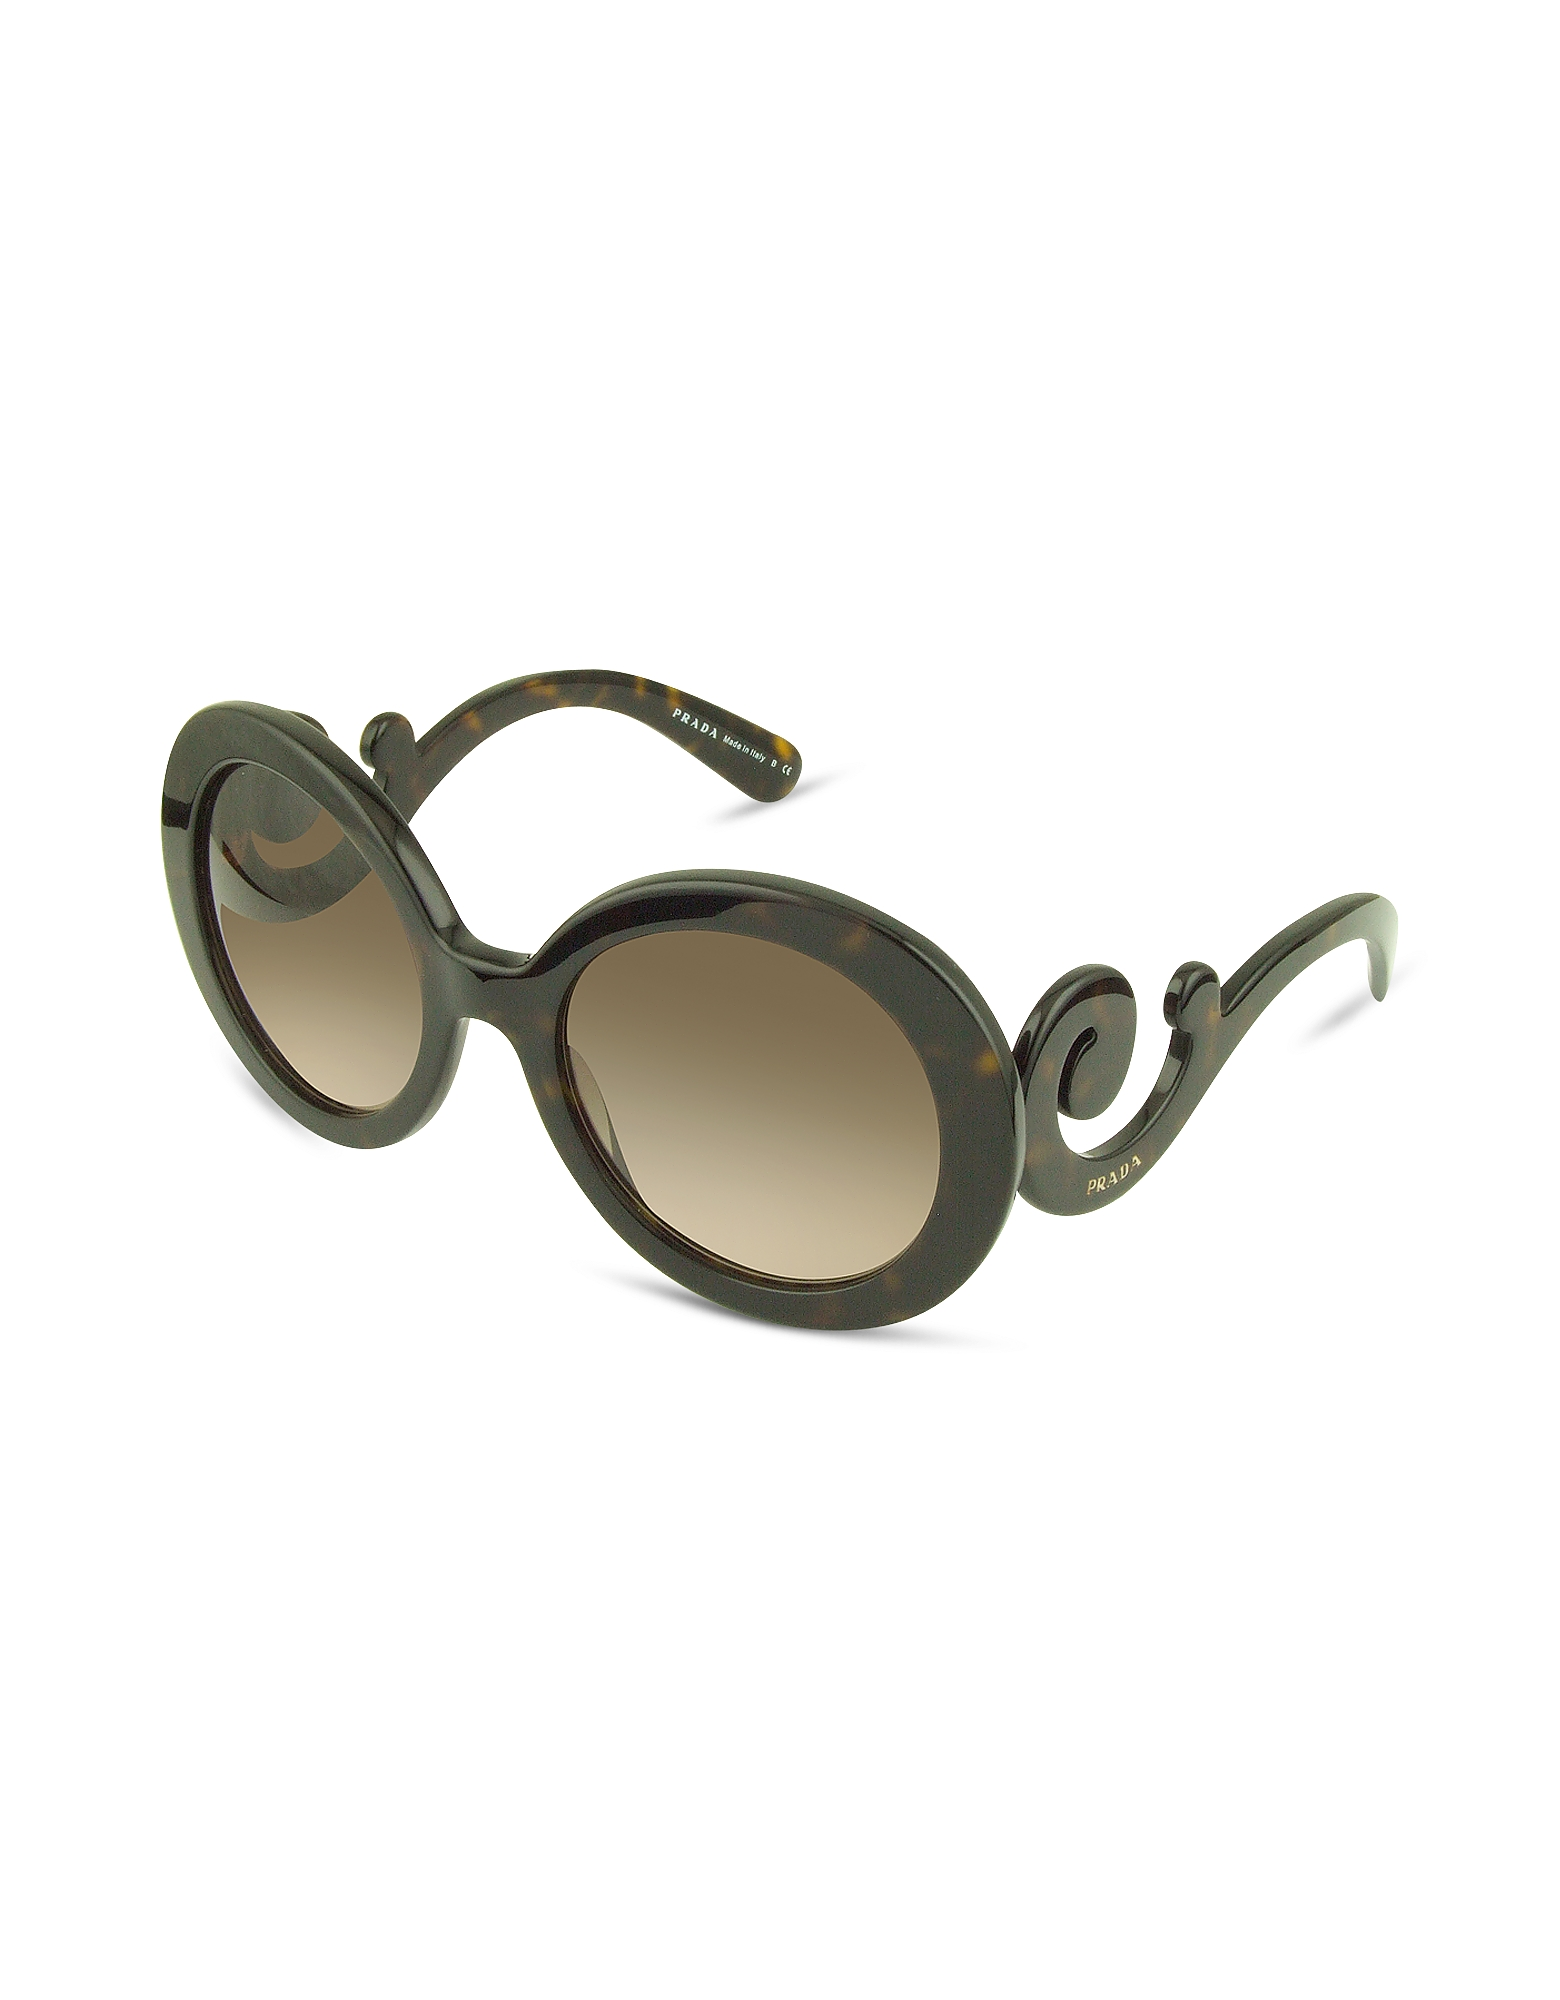 Prada Designer Sunglasses, Swirled Temple Large Frame Sunglasses